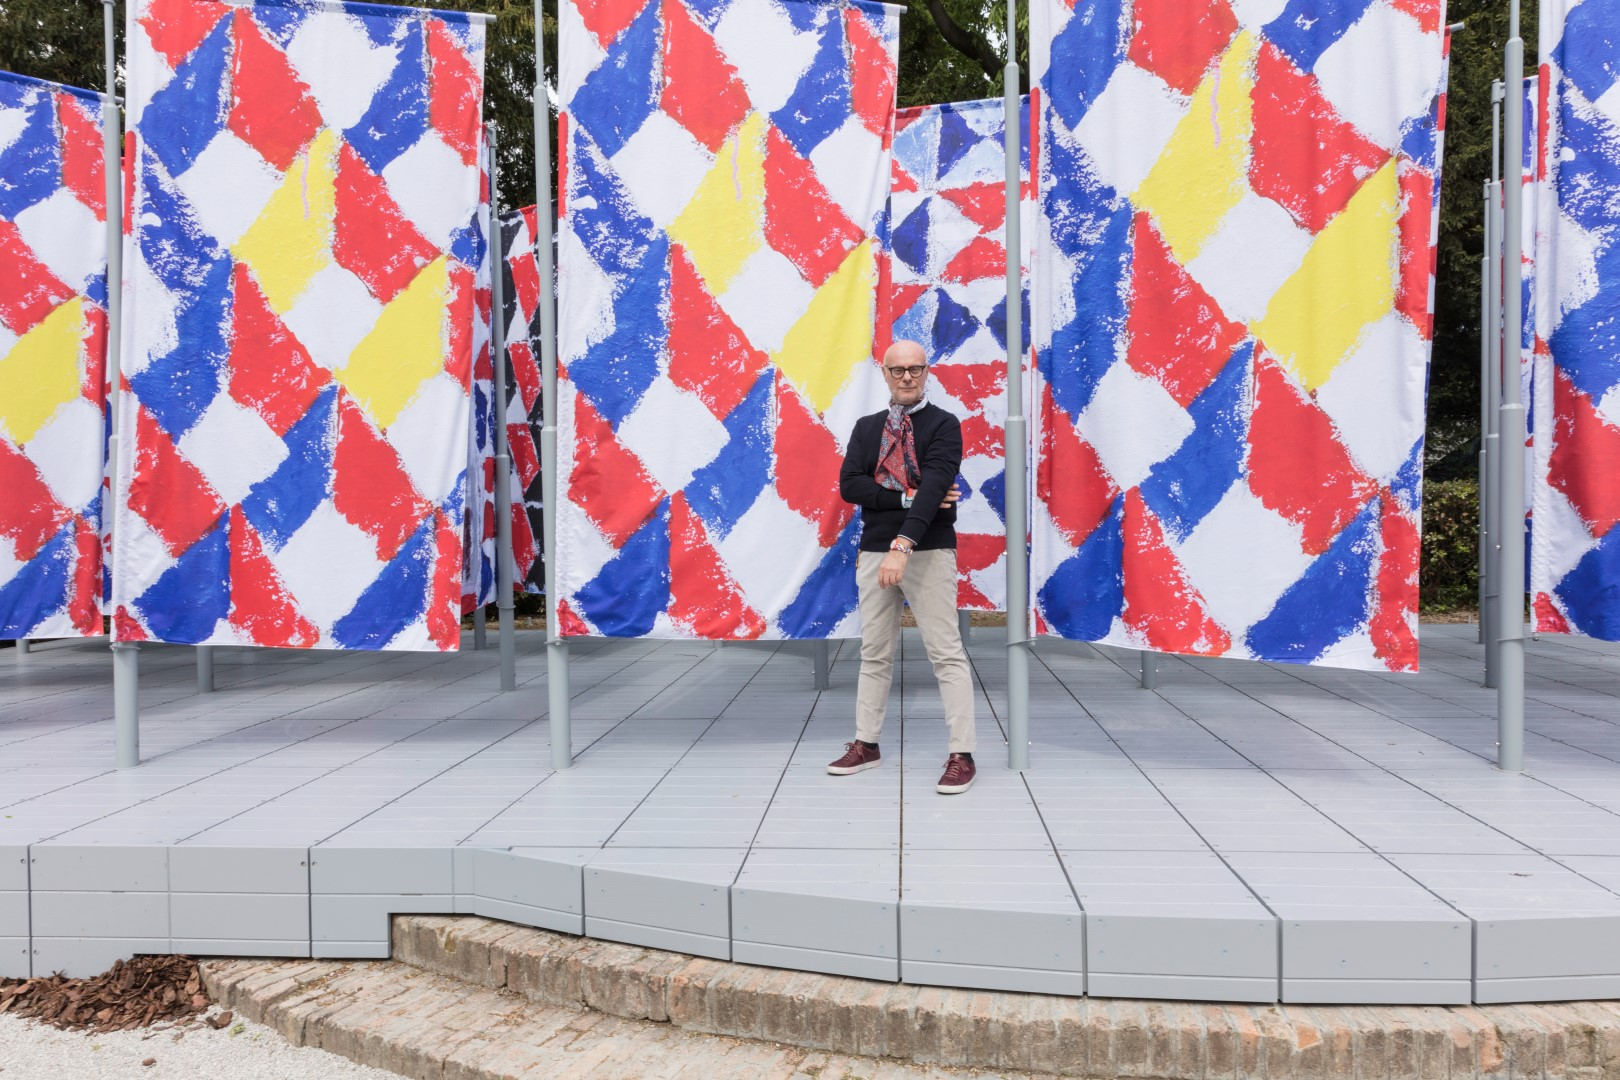 Biennale Venezia Arte 2019 The Flags